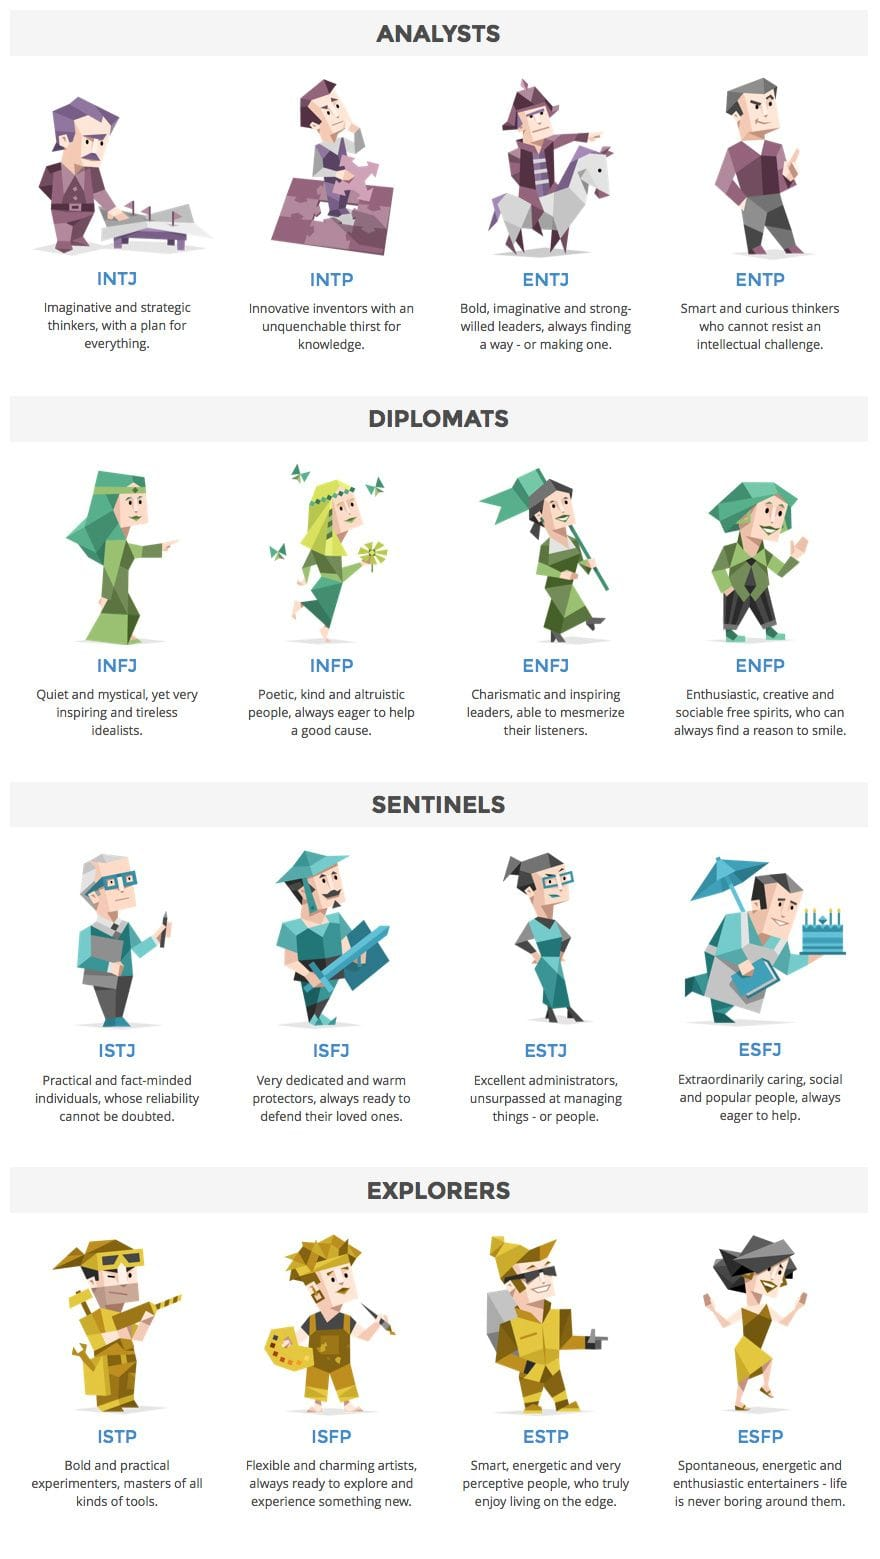 Myers-Briggs Type Indicator (MBTI) cognitive styles - Analysts, Diplomats, Sentinels, Explorers